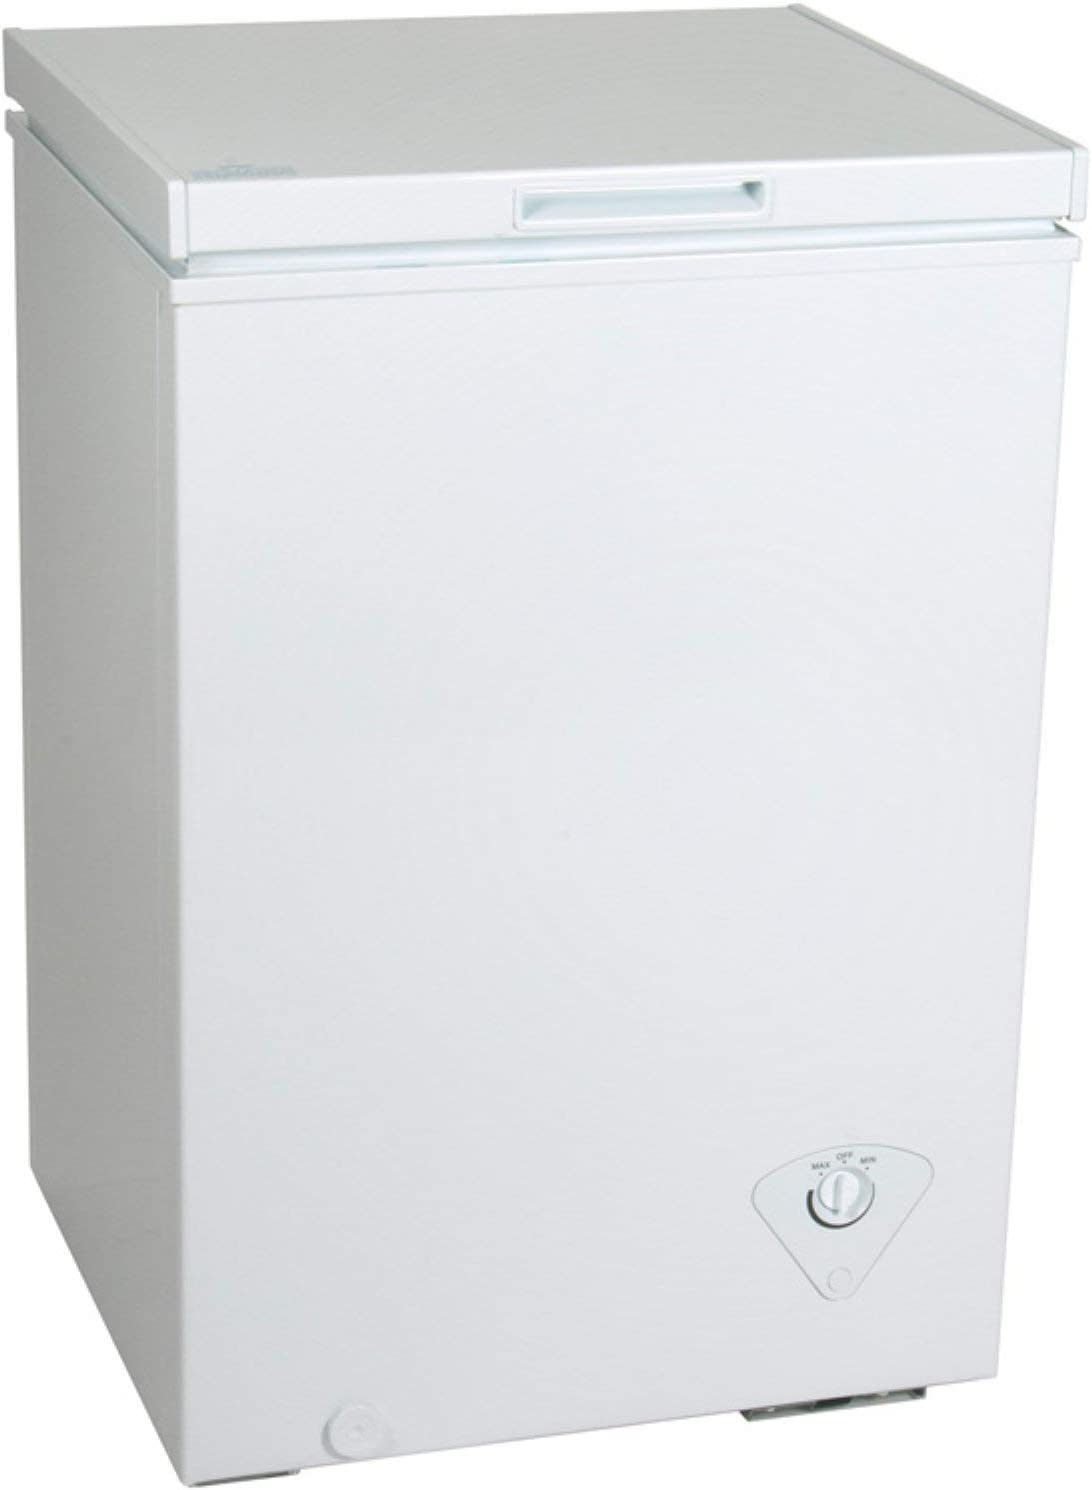 King Chest Freezer (21.69 x 22.24 x 33.46 Inches, White)